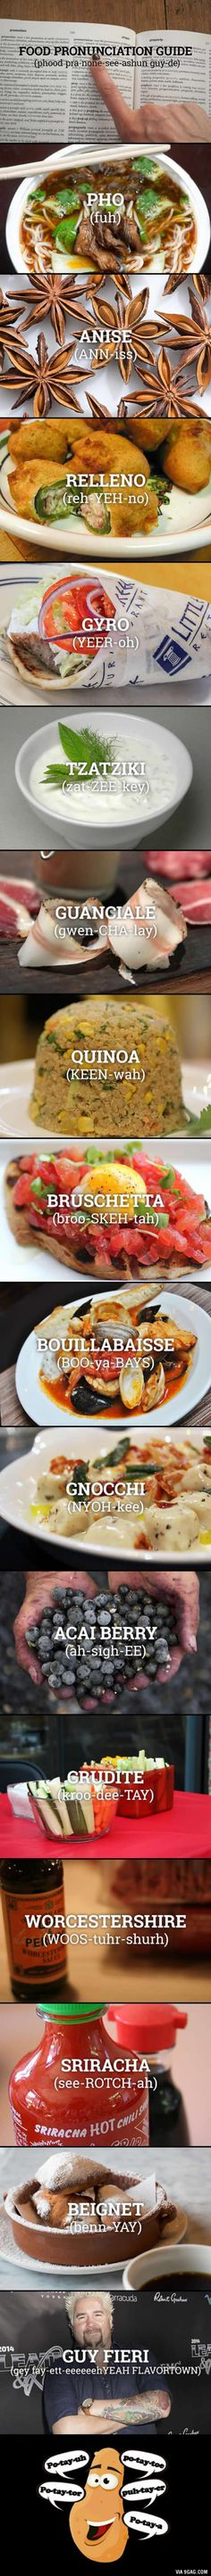 16 commonly mispronounced food words